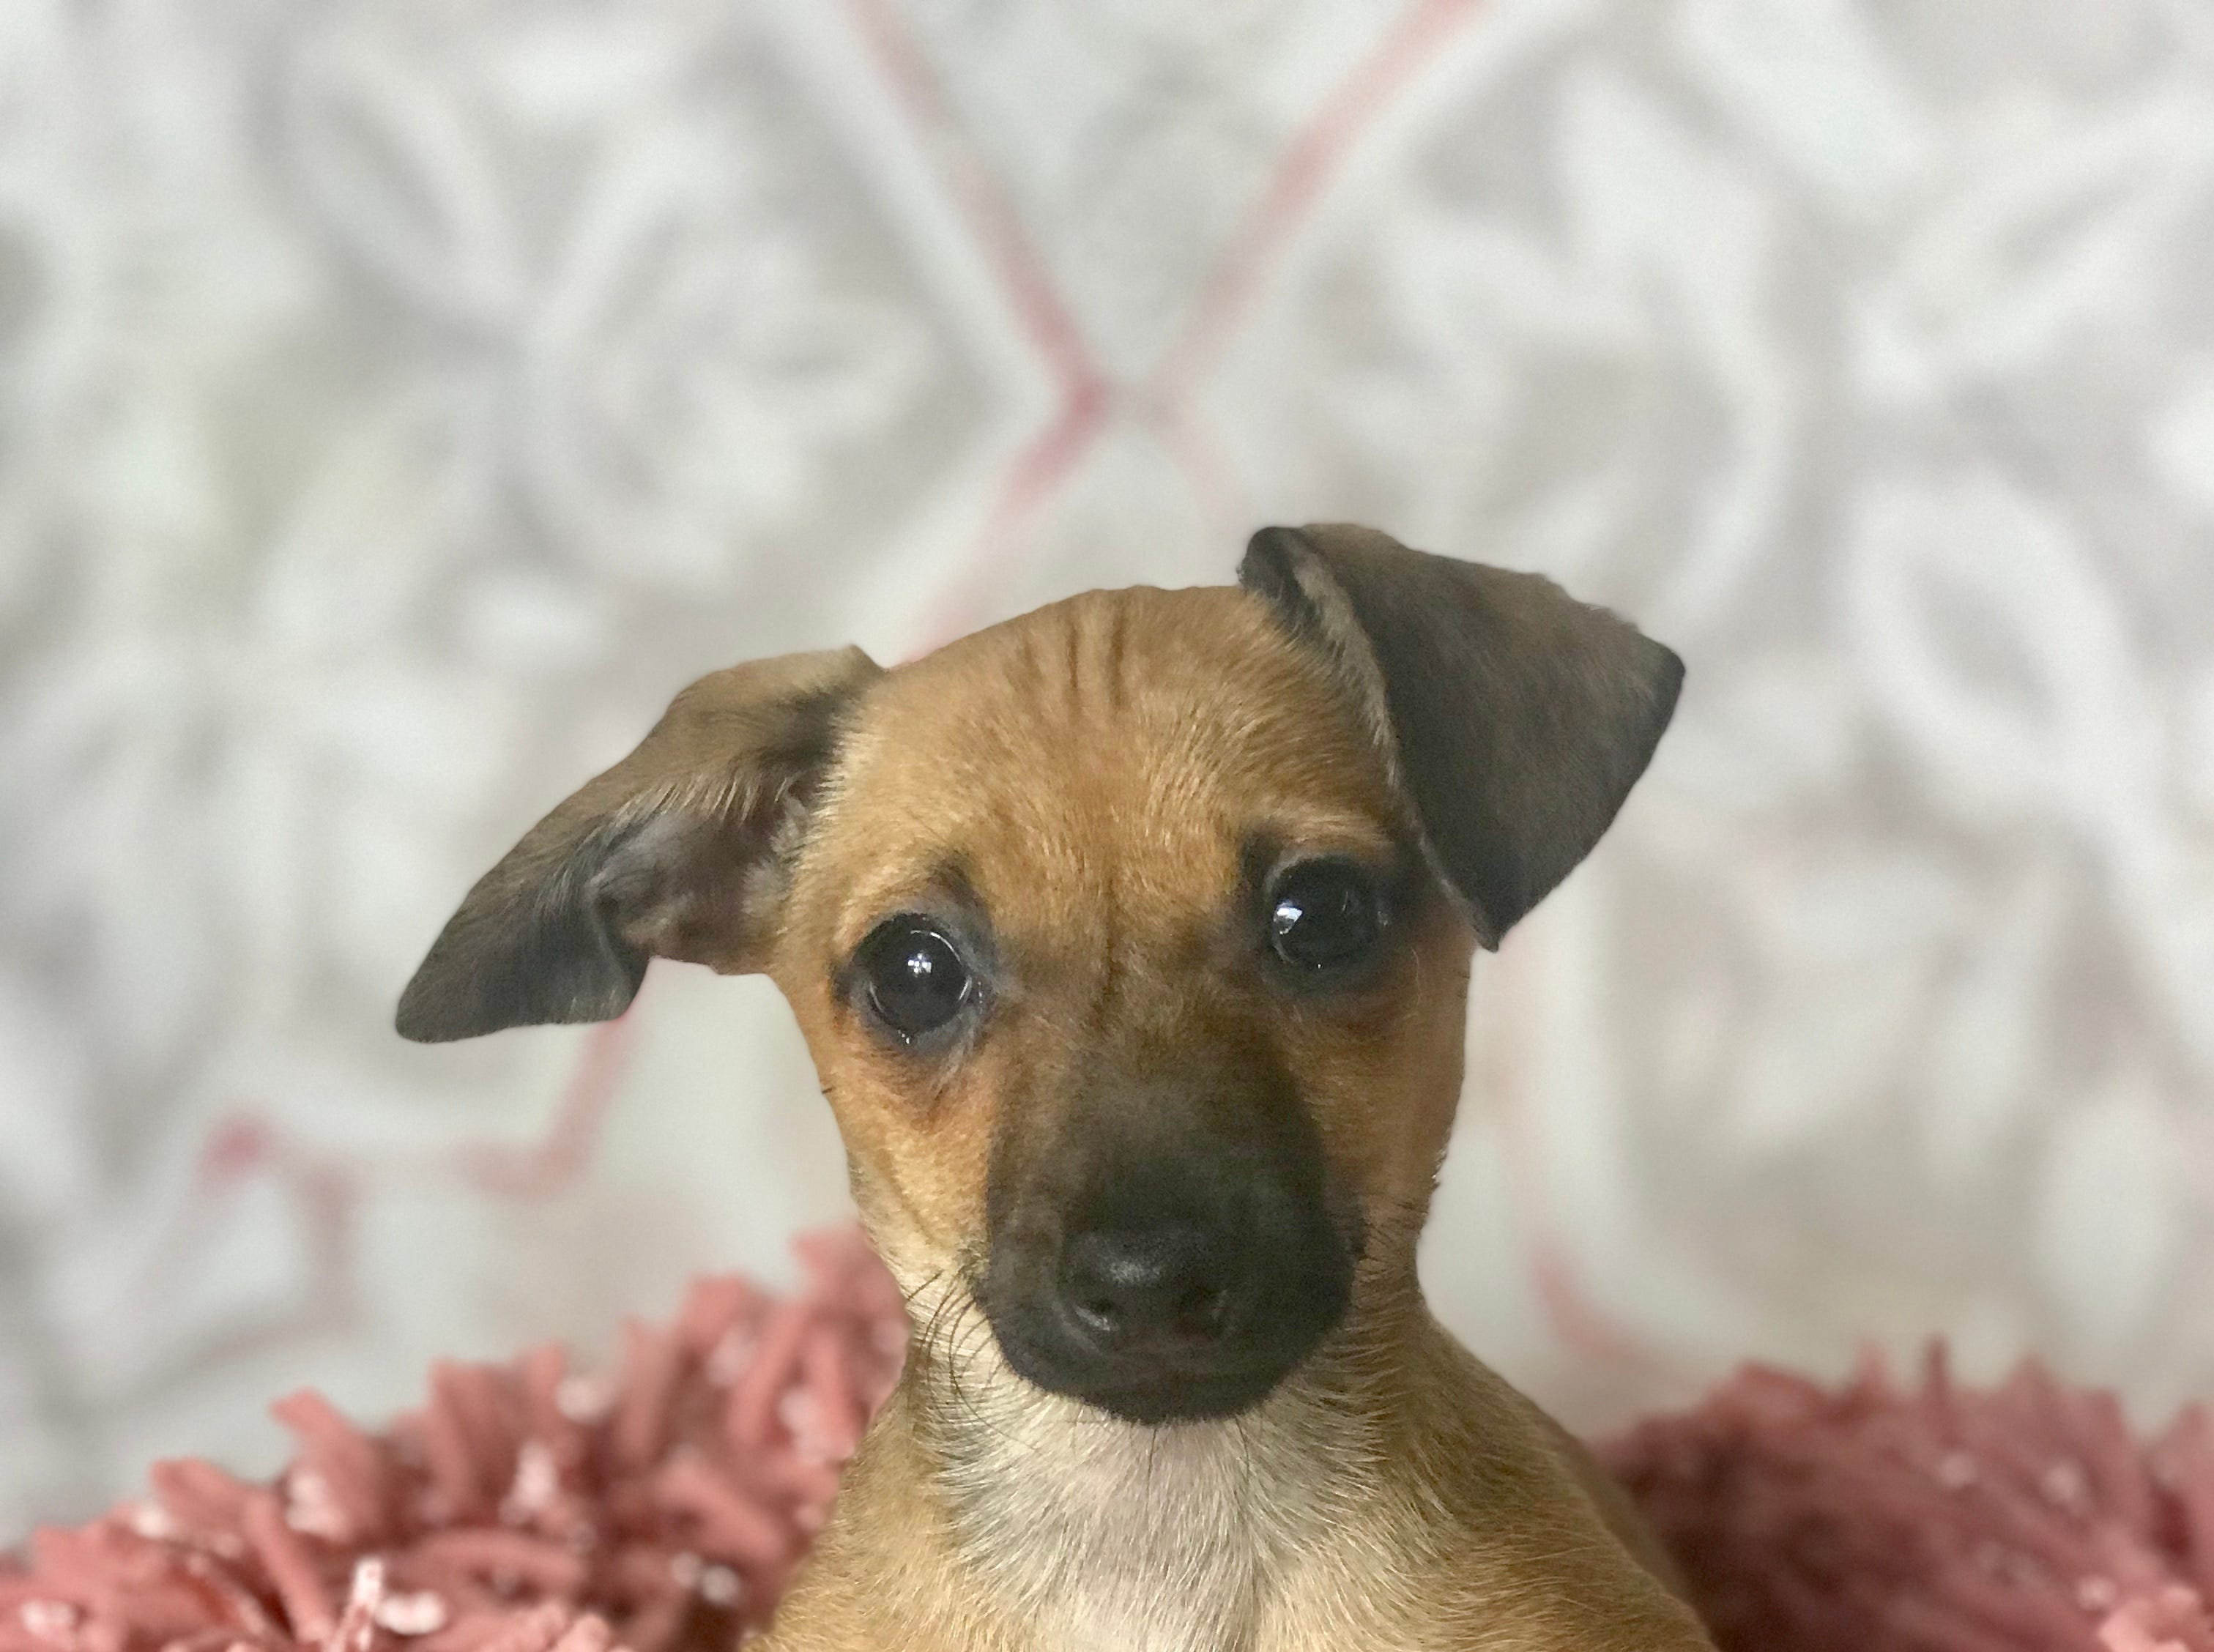 Mignon is a female, 3.5-month-old Dachshund-mix puppy. She's easy going and gets along with dogs and cats. She would be best with at least one other dog to play with. This baby is learning house manners. Visit Tails of Rescue Adoption Center, 981 Lake Blvd., Redding. Call 448-7444. Go to http://tailsofrescue.org.